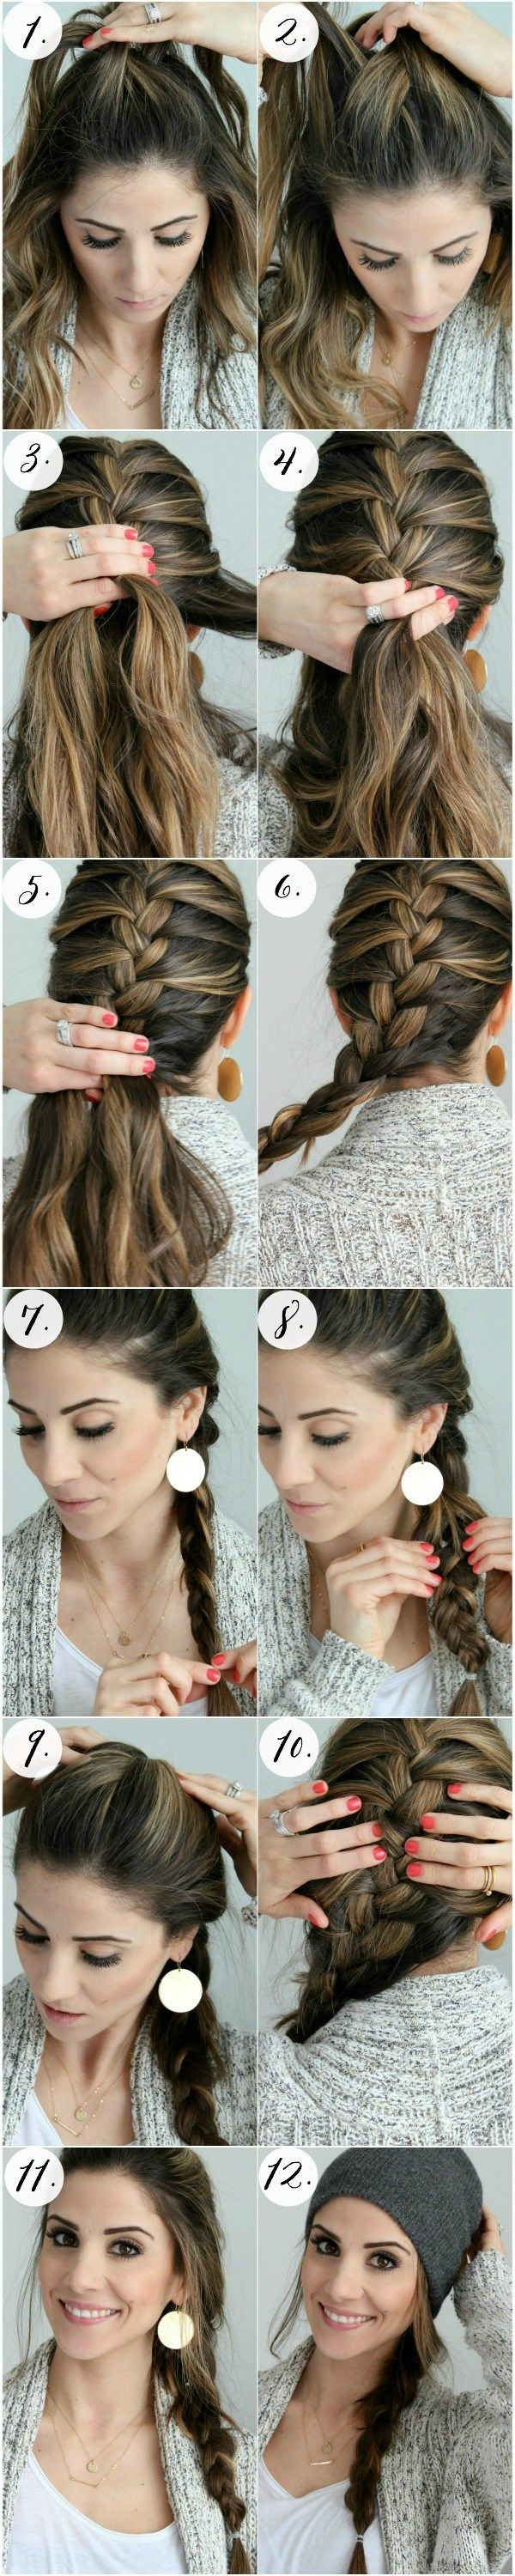 Bookmark this! A cute and simple French Braid Tutorial for moms!